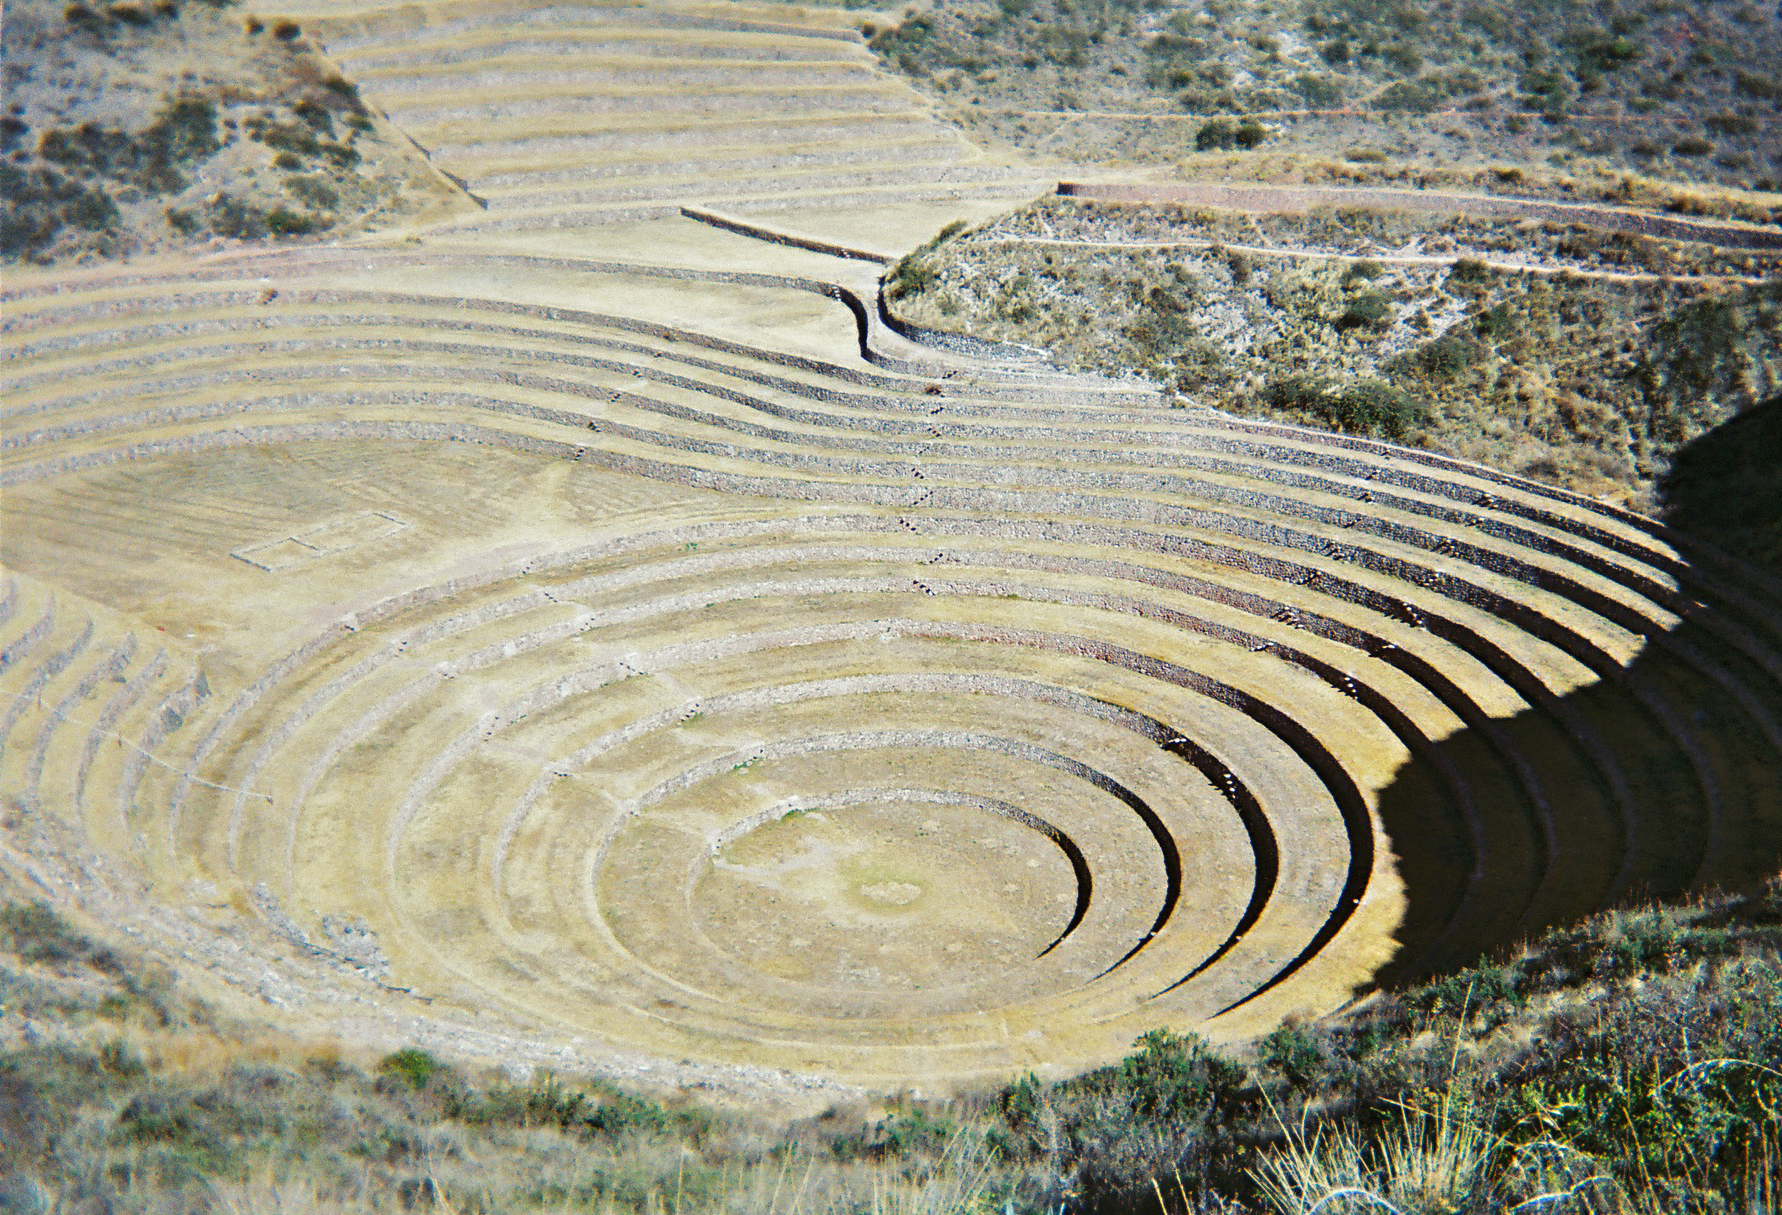 Ancient Agricultural Terraces in Peru